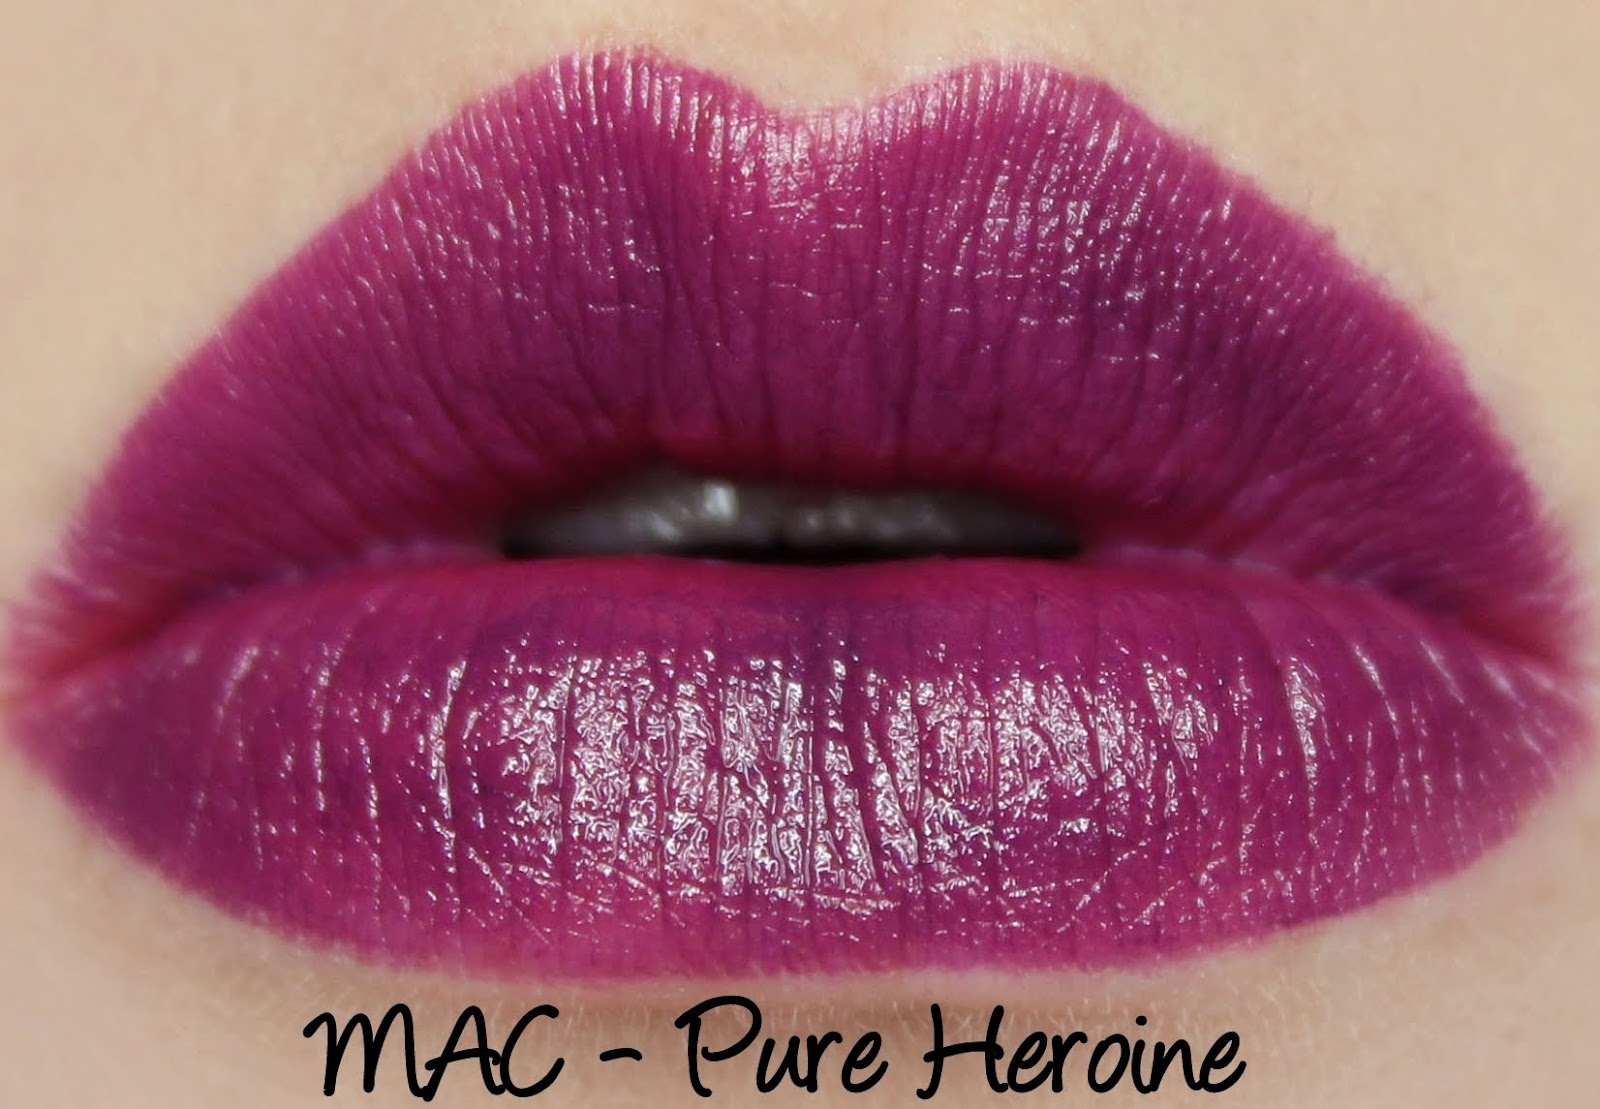 MAC Monday: MAC X Lorde - Pure Heroine Lipstick Swatches & Review